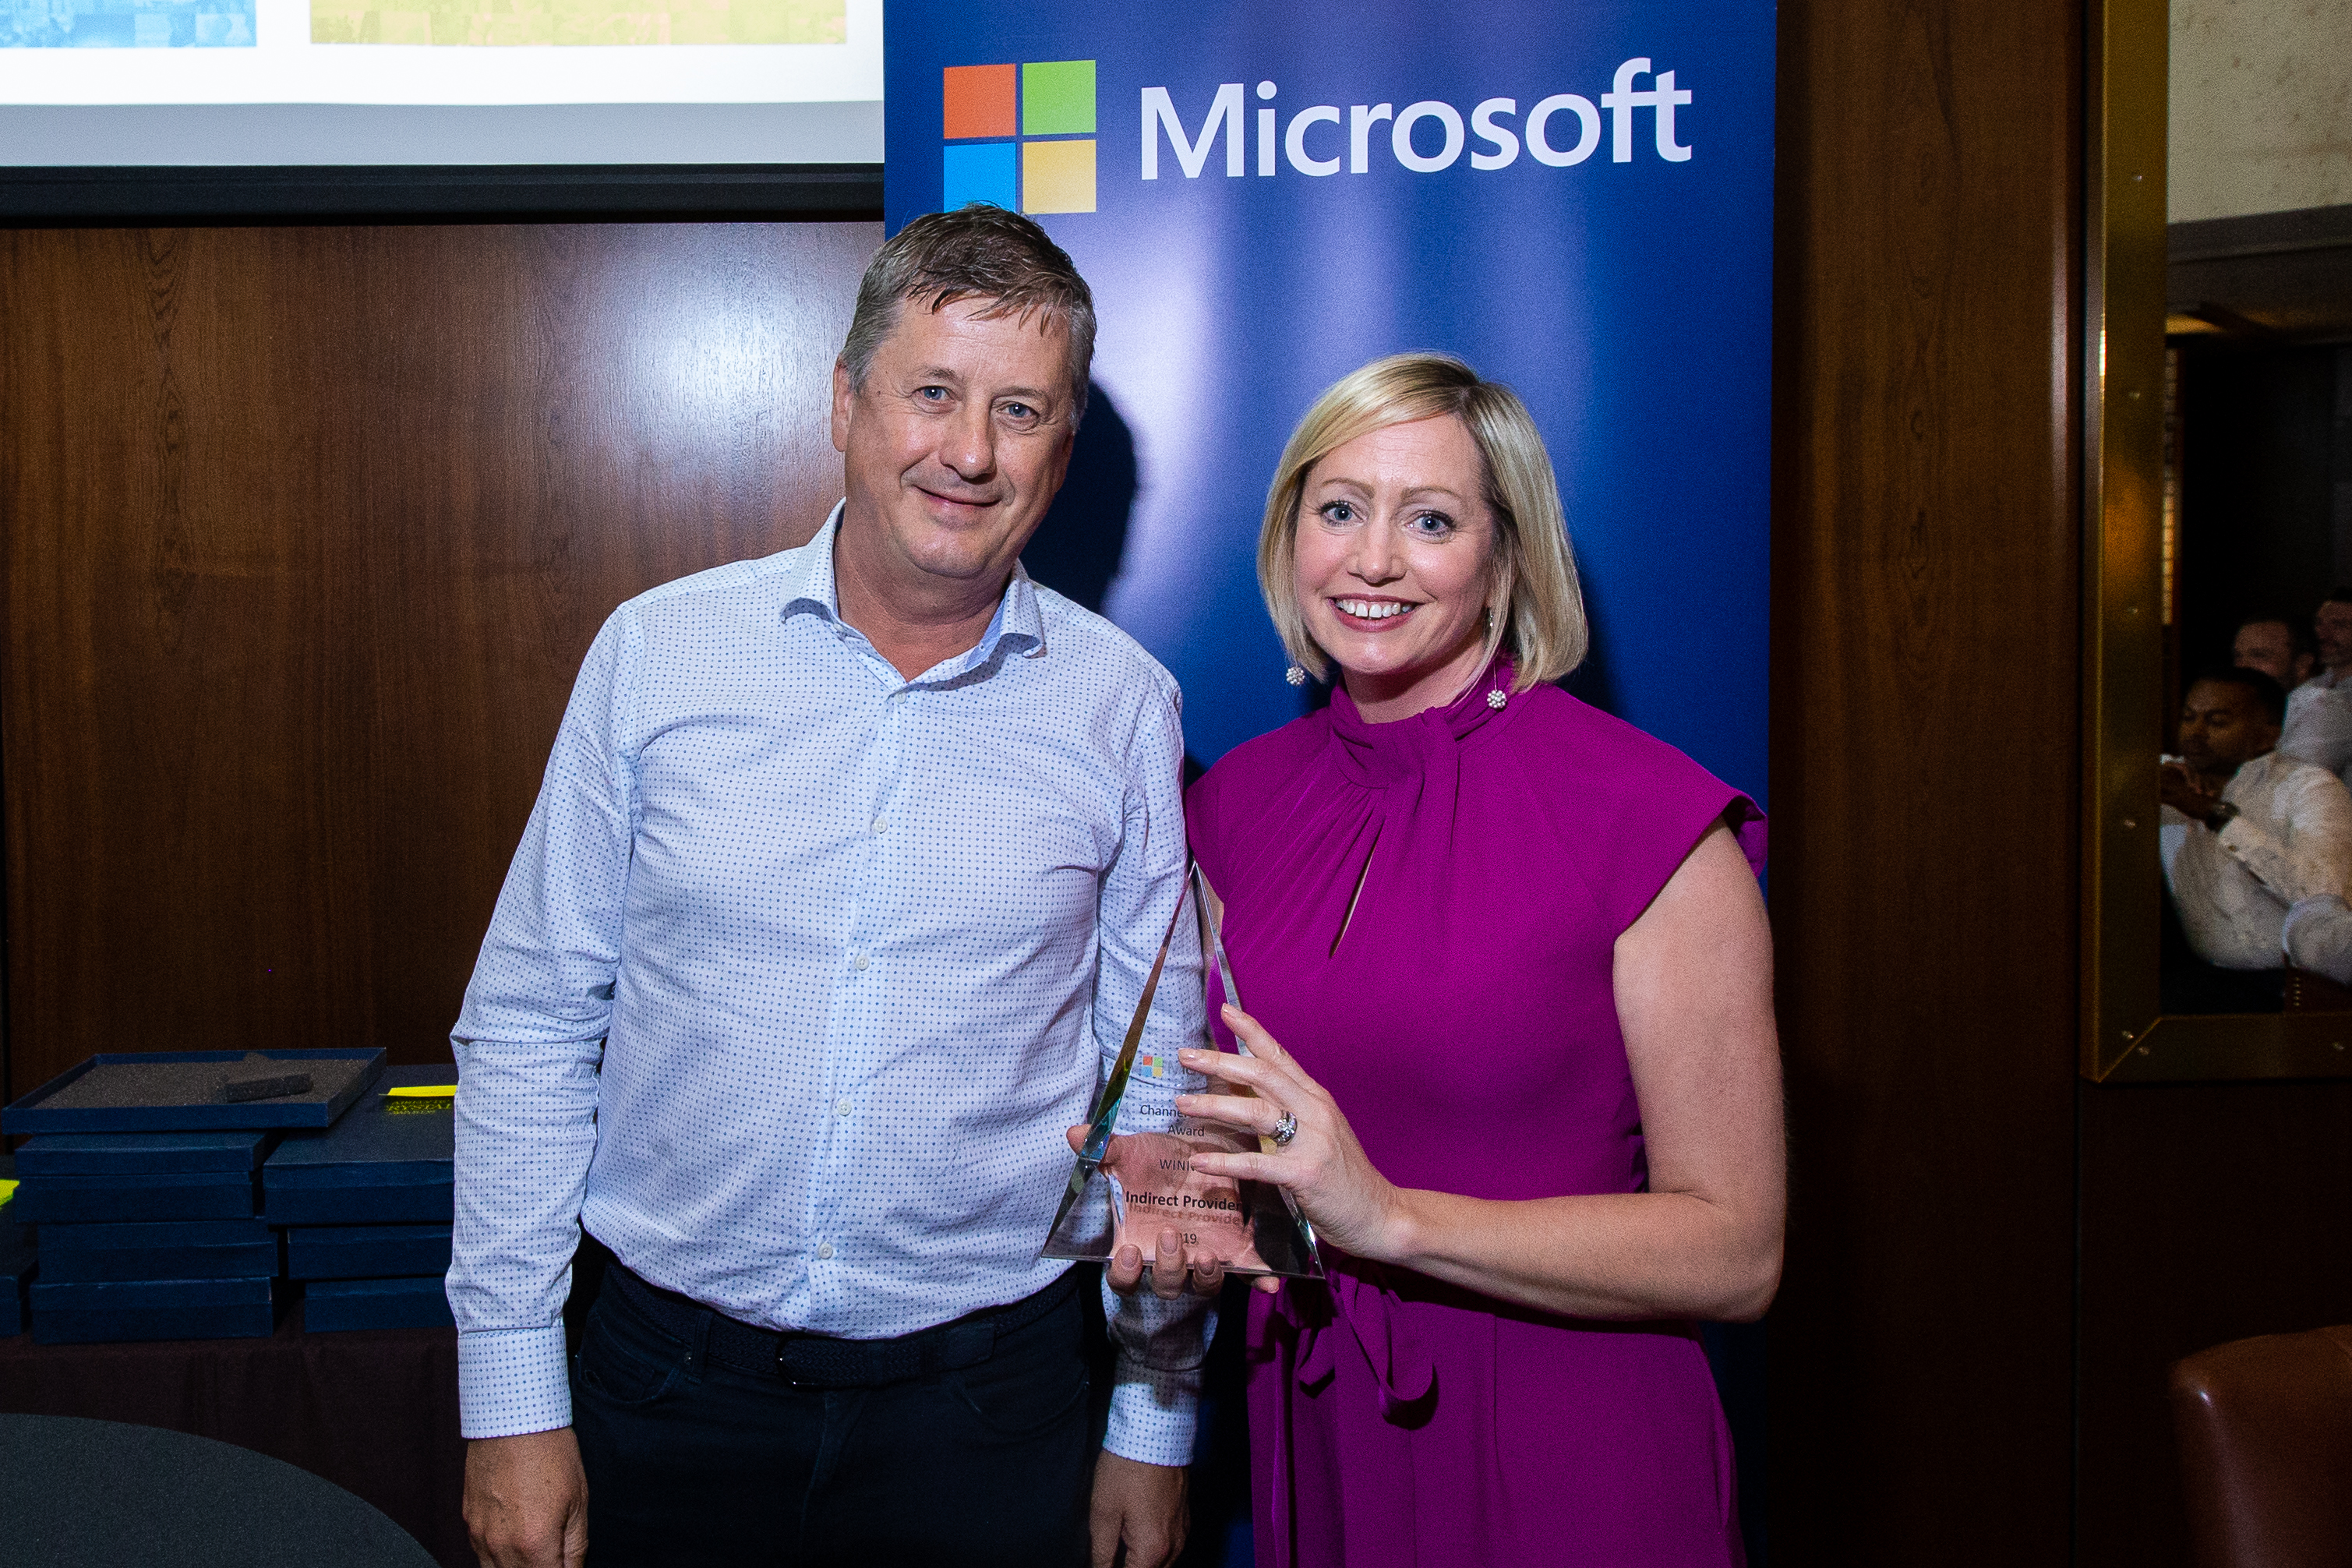 Kieran McDonnell of Vuzion and Aisling Curtis from Microsoft